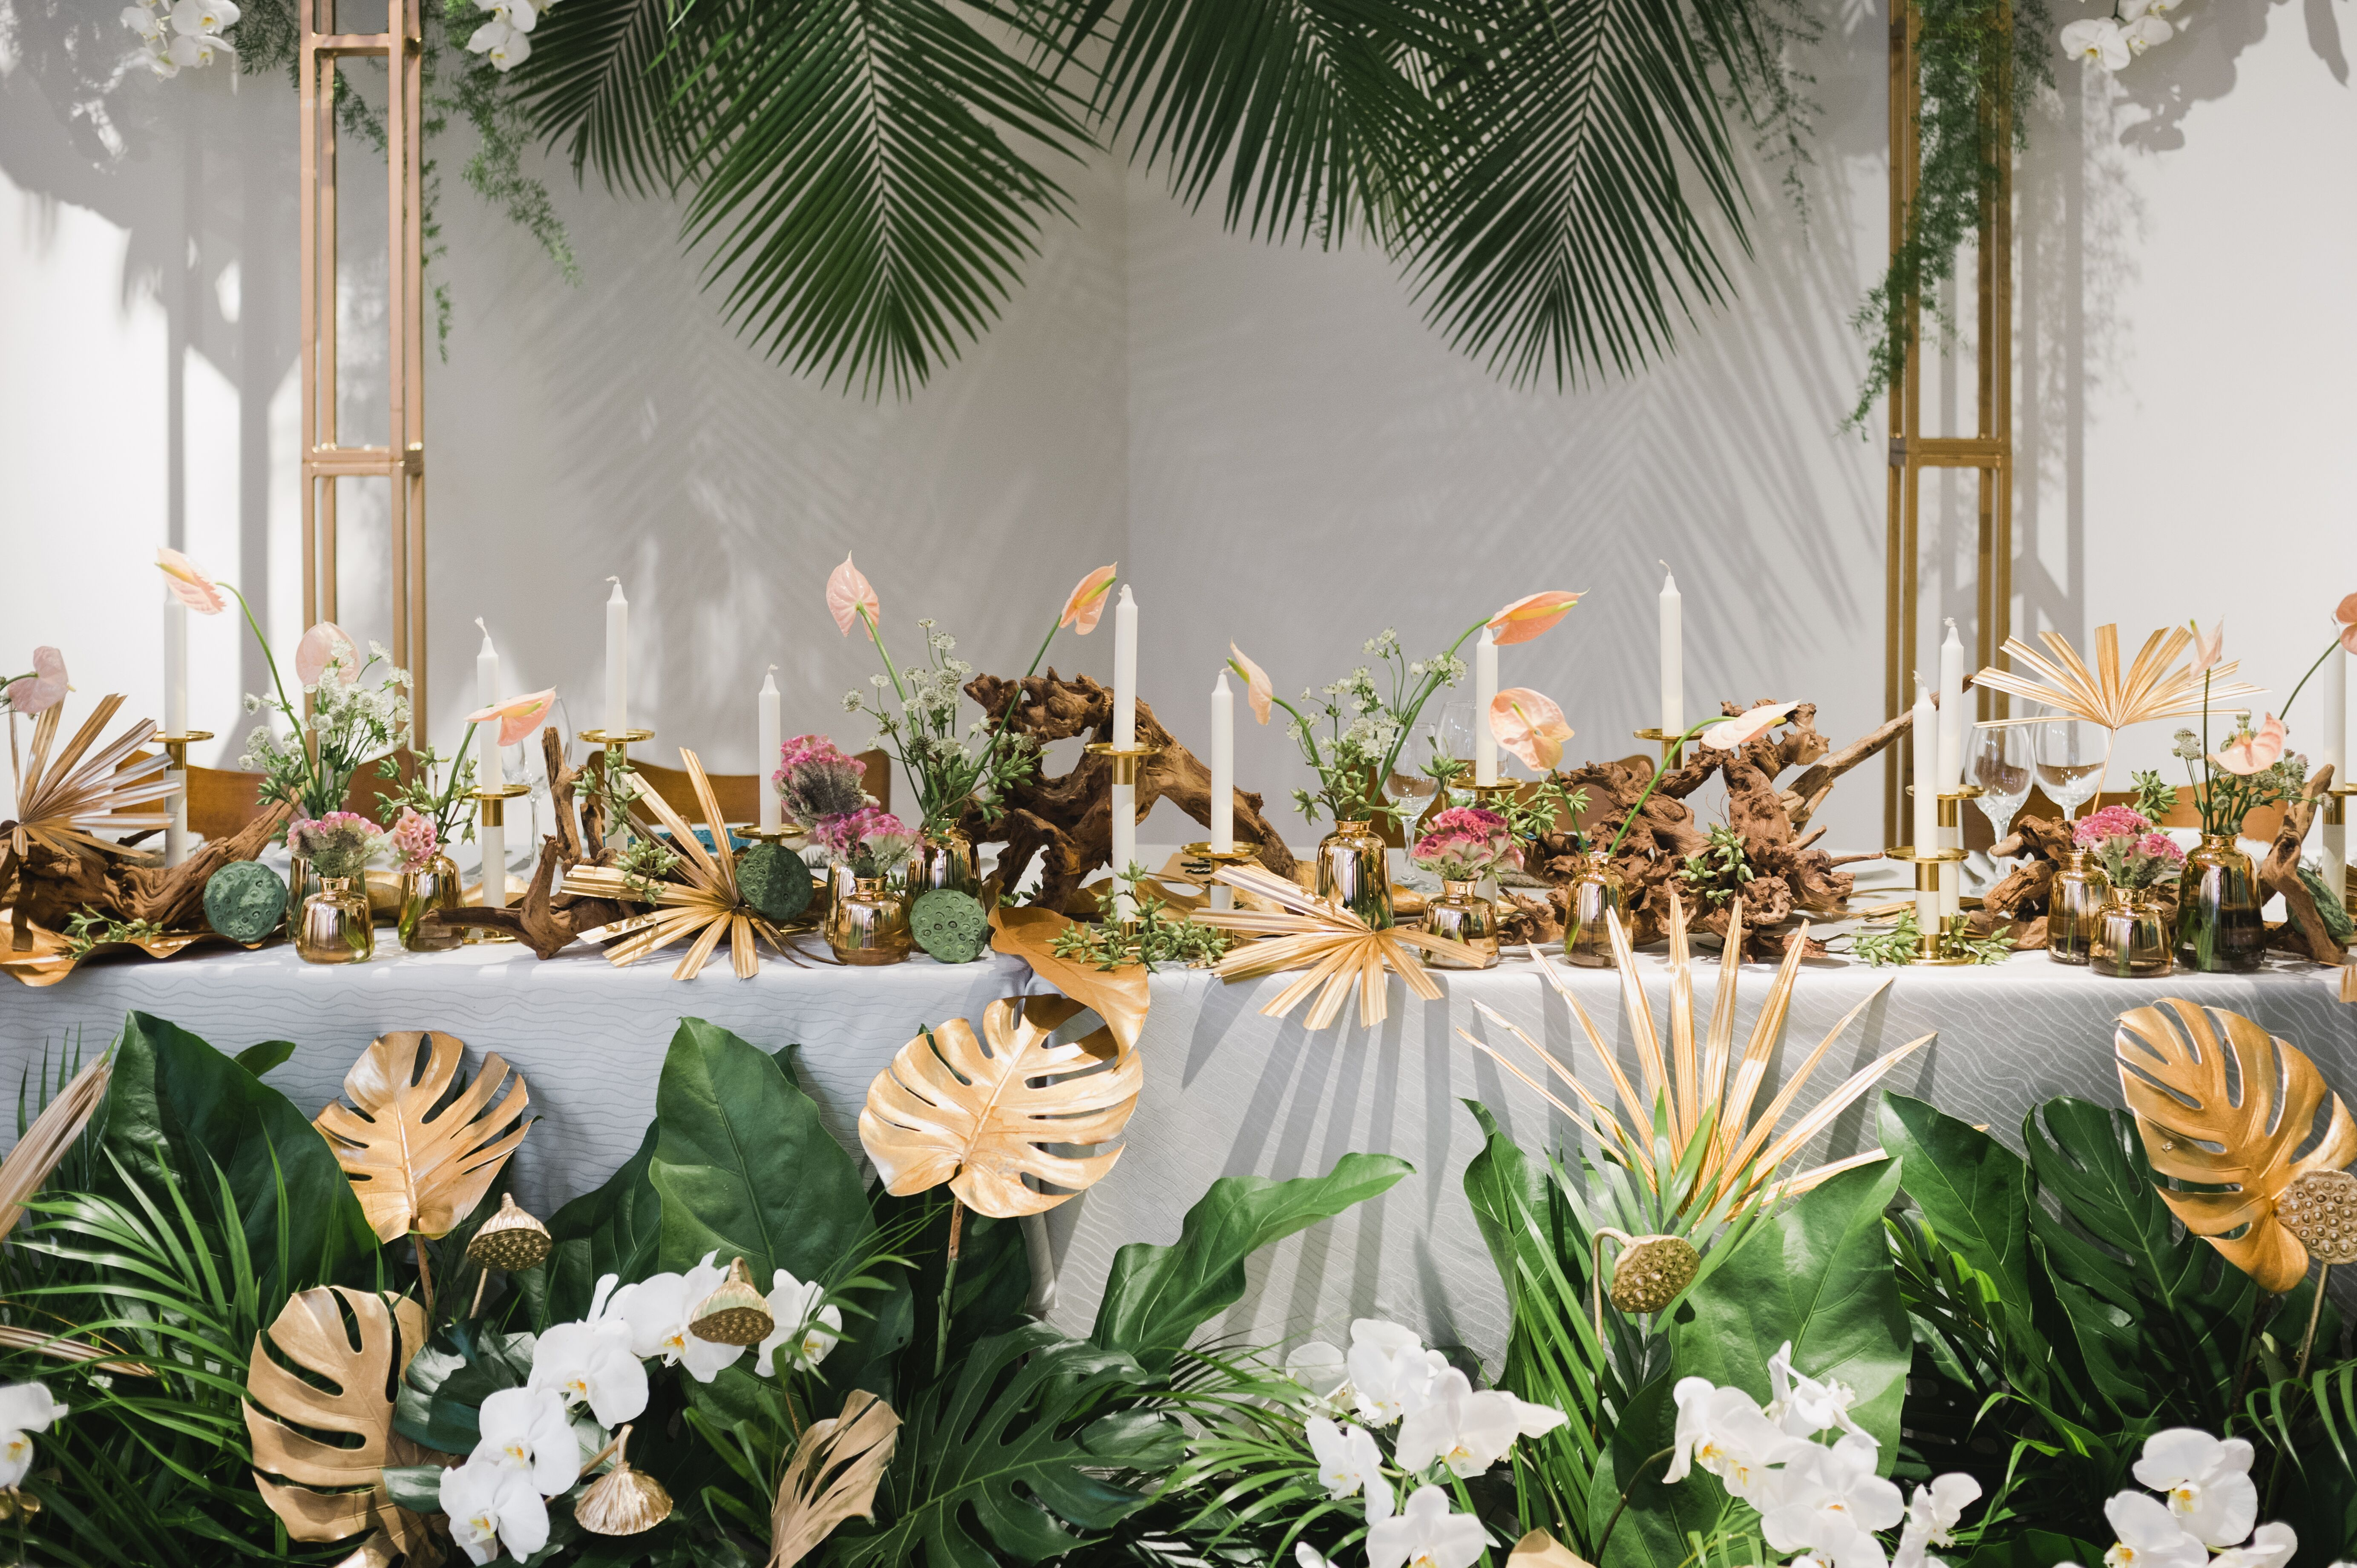 Decor by Darling Florist & Events and Tie The Knot